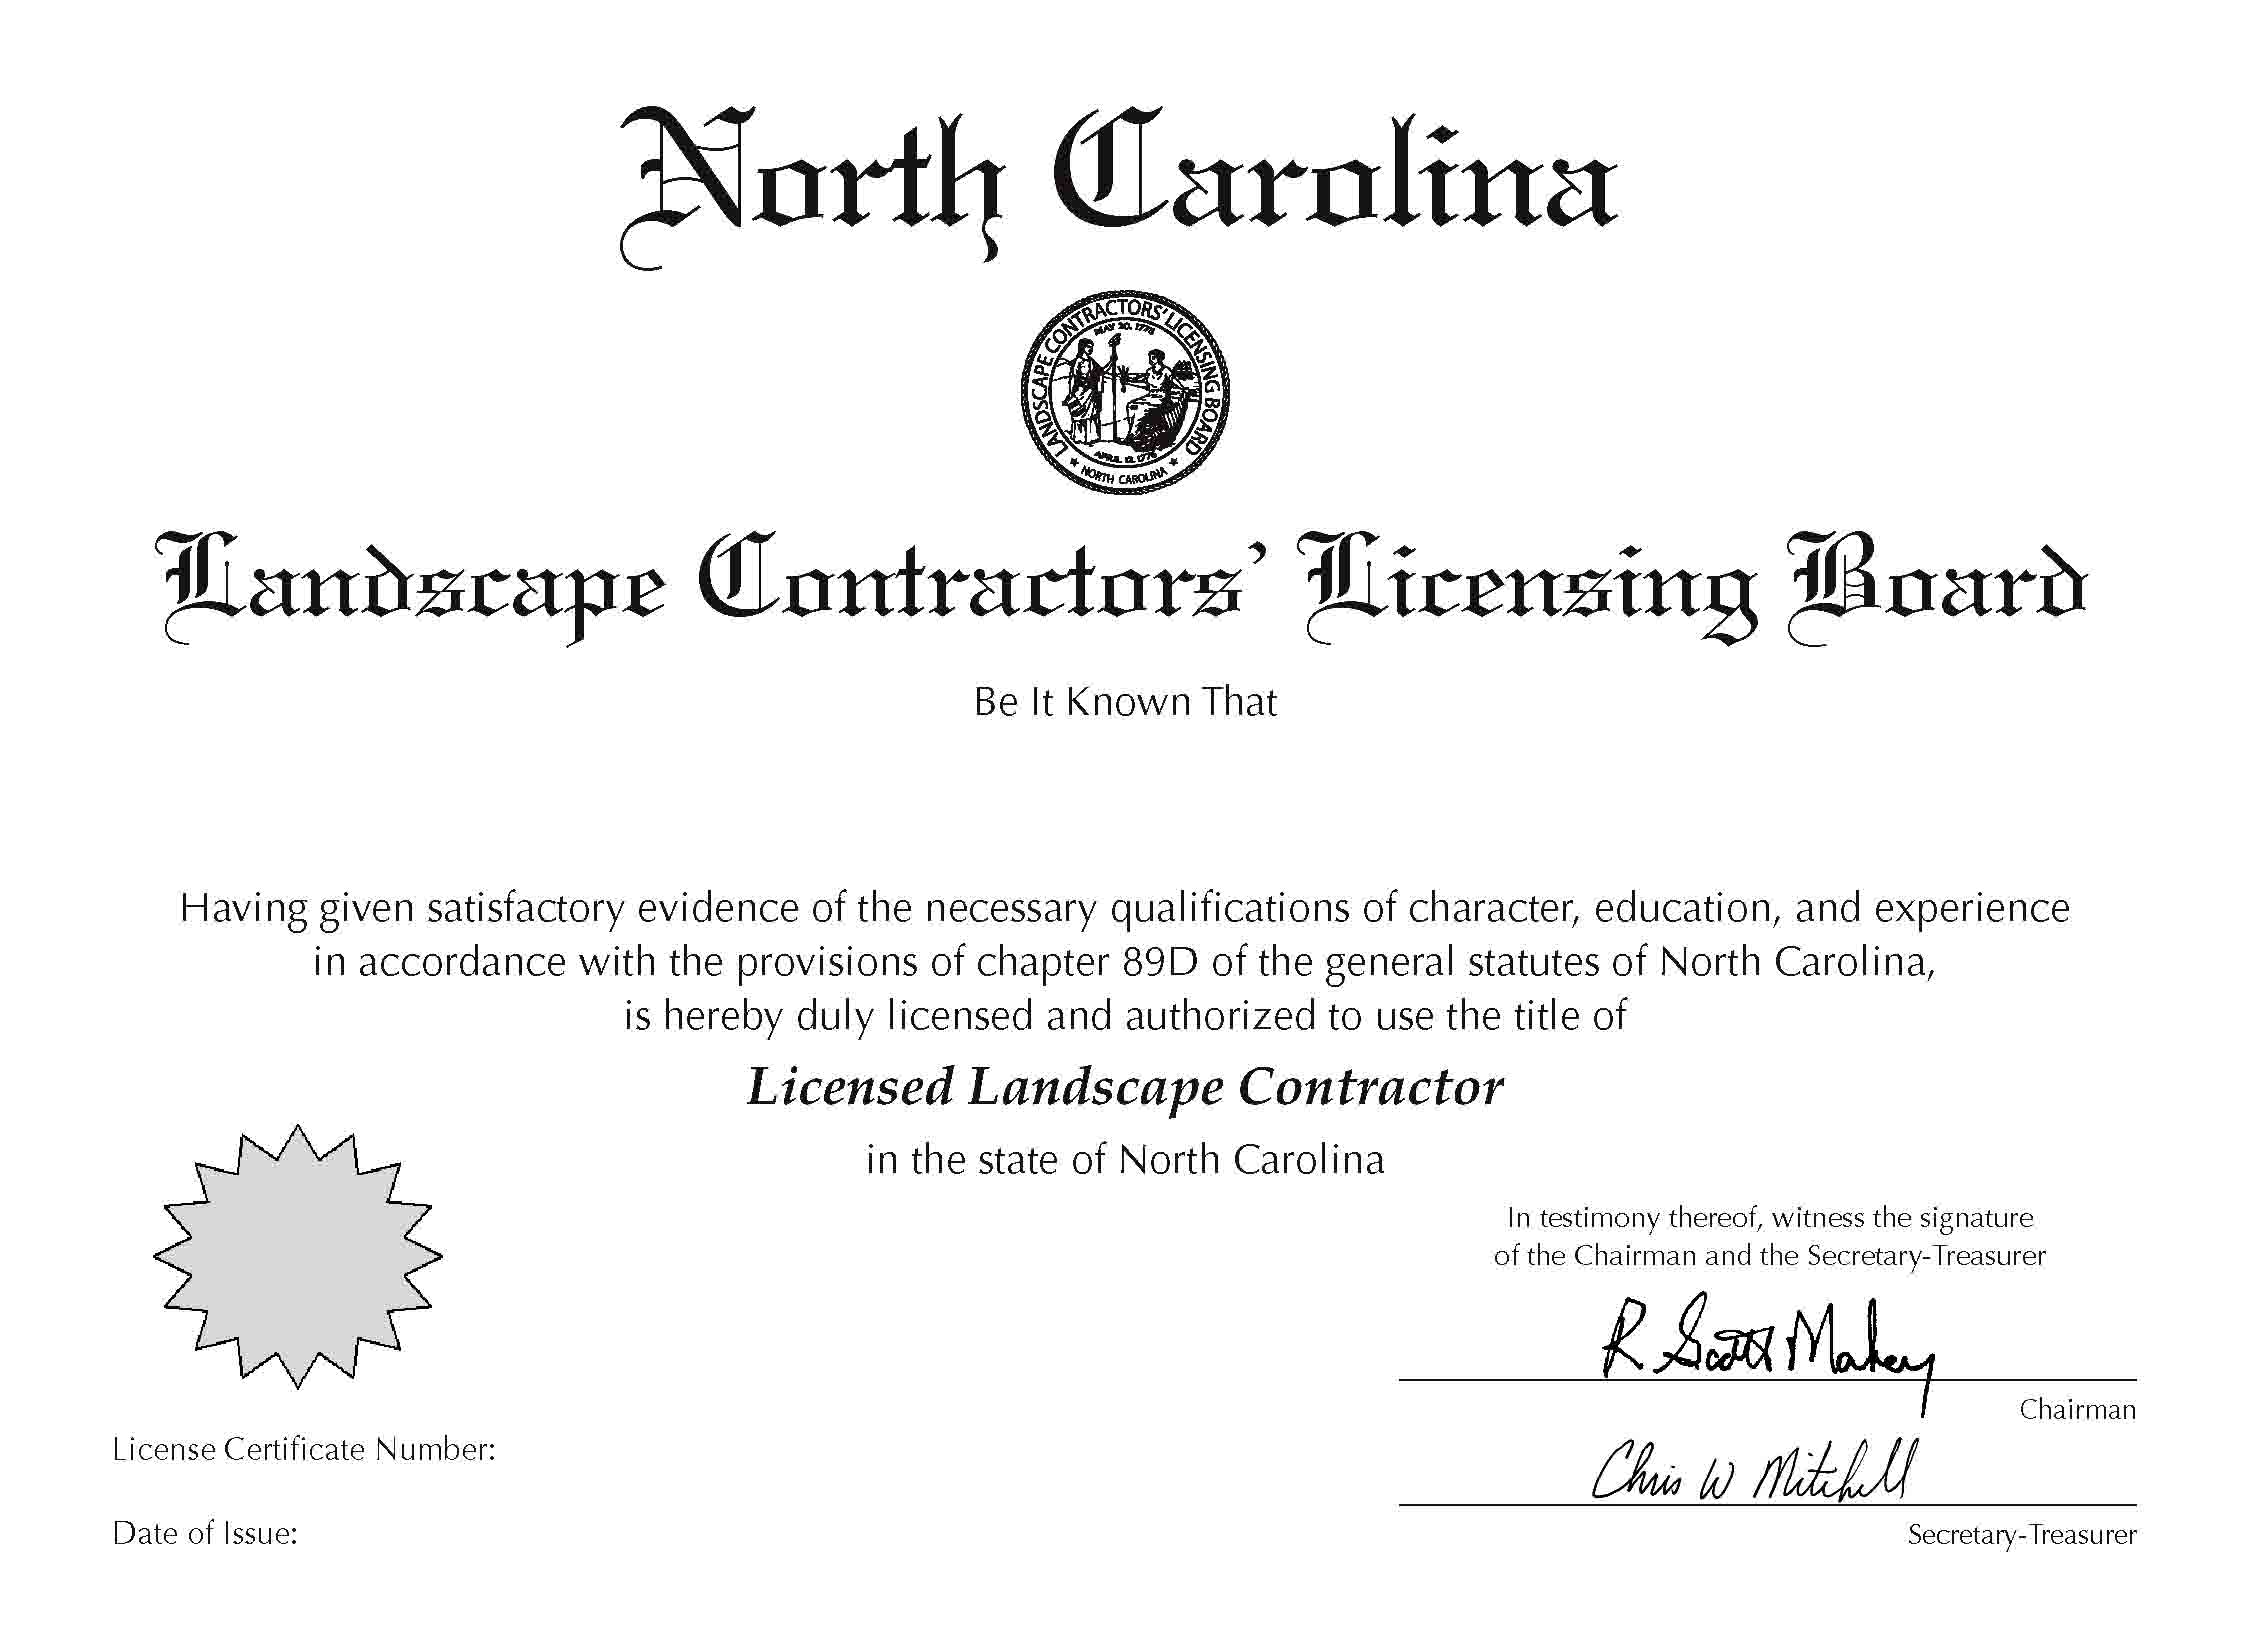 Nc Sales Tax 2017 >> Decal and Wall Certificate Order Form | NC Landscape Contractors' Licensing Board